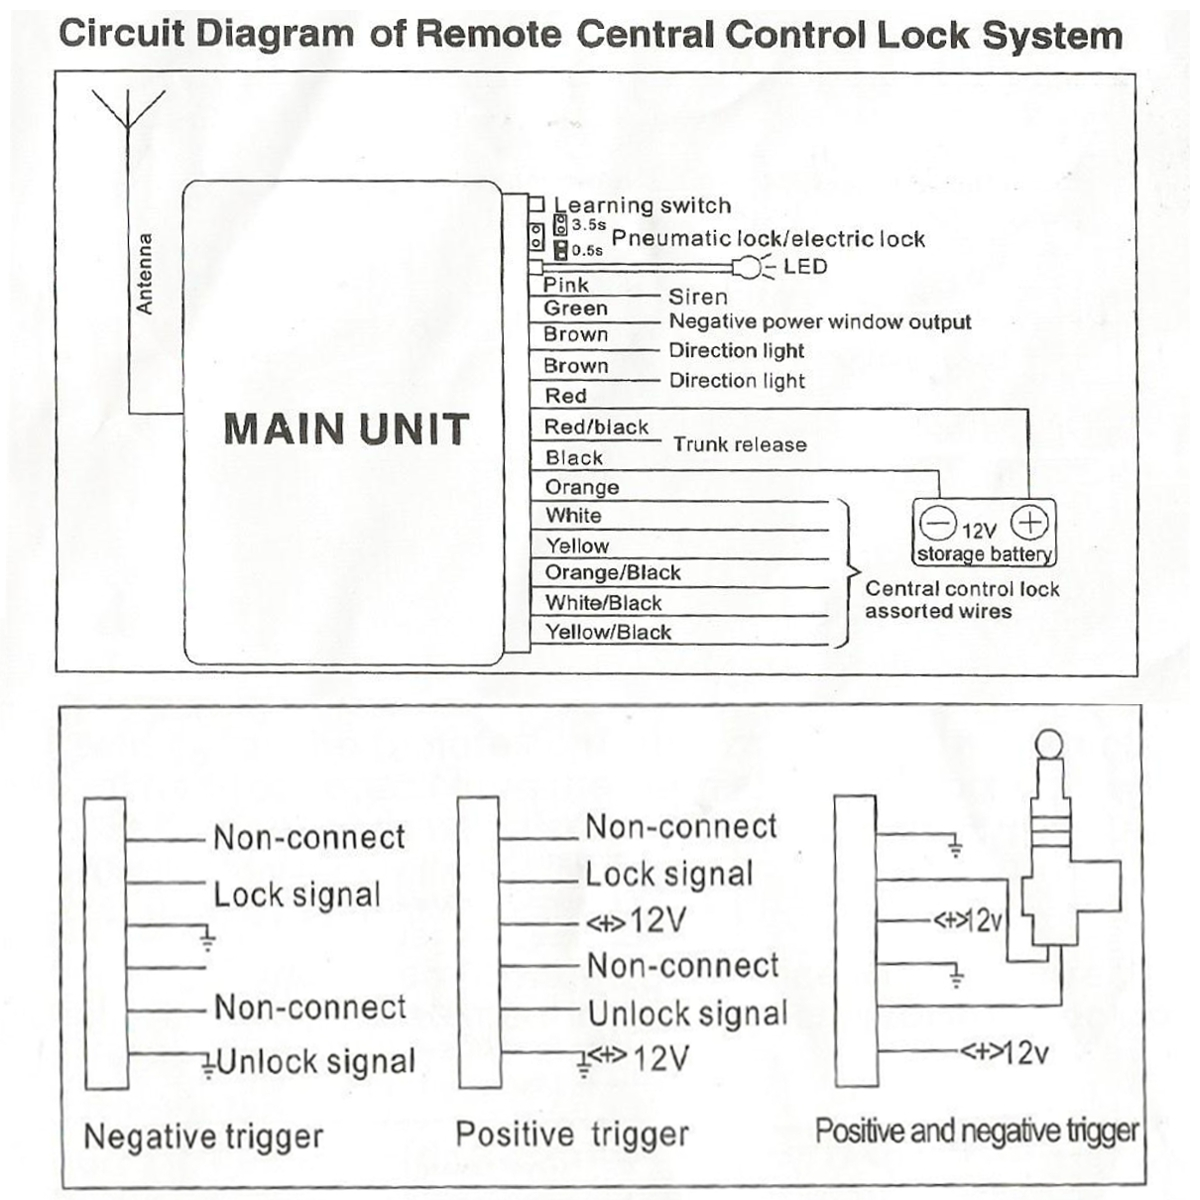 hight resolution of main control unit 2x remotes instructions wiring diagram wiring wiring low voltage under cabinet lighting remote central locking wiring diagram